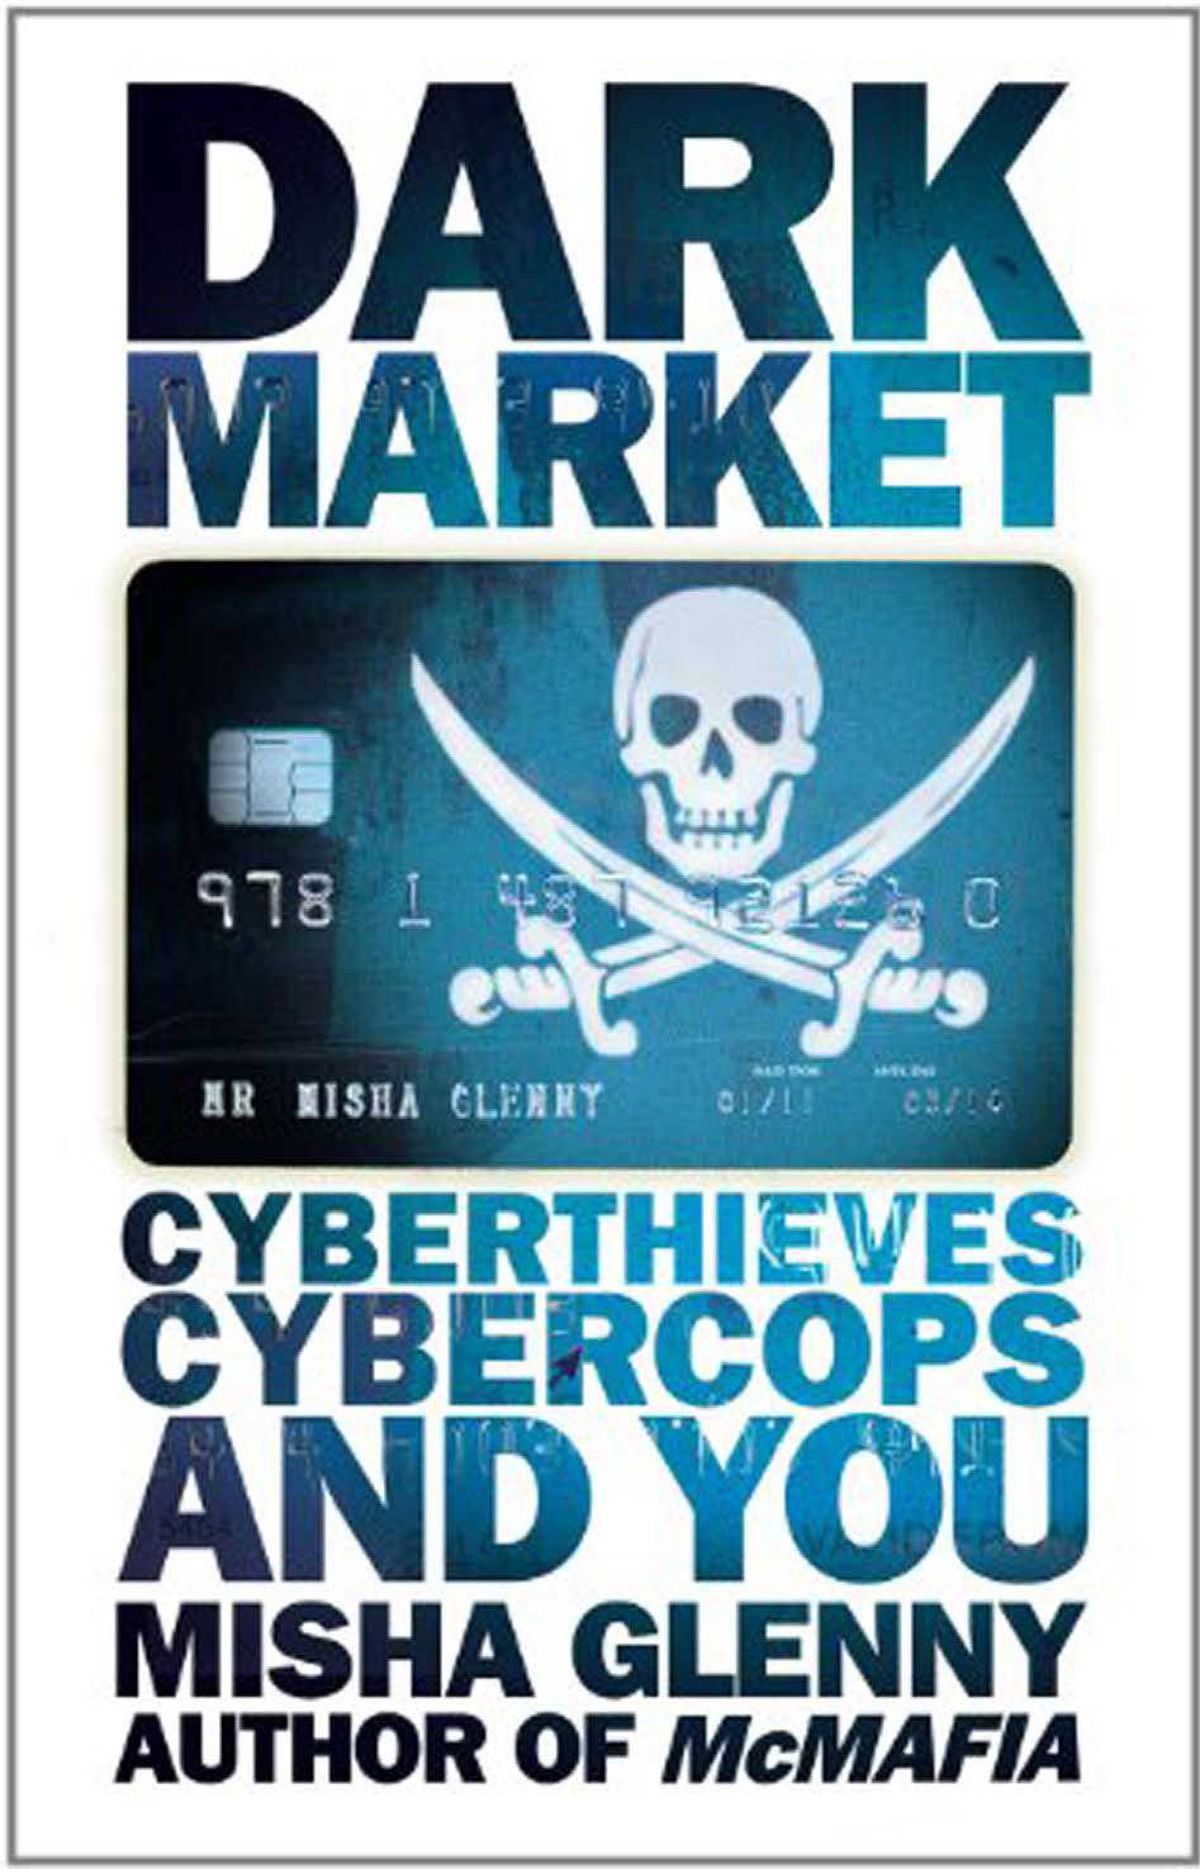 DARKMARKET Cyberthieves, Cybercops and You By Misha Glenny (Anansi) British writer Glenny's history of how cyber-crime went from the domain of lone-wolf hackers to a highly organized criminal underworld is entertaining, well written and any number of insightful diagnoses, such as the competitions between hackers, or the reasons why law-enforcement agencies have such difficulty working together. – Jeffrey Hunker